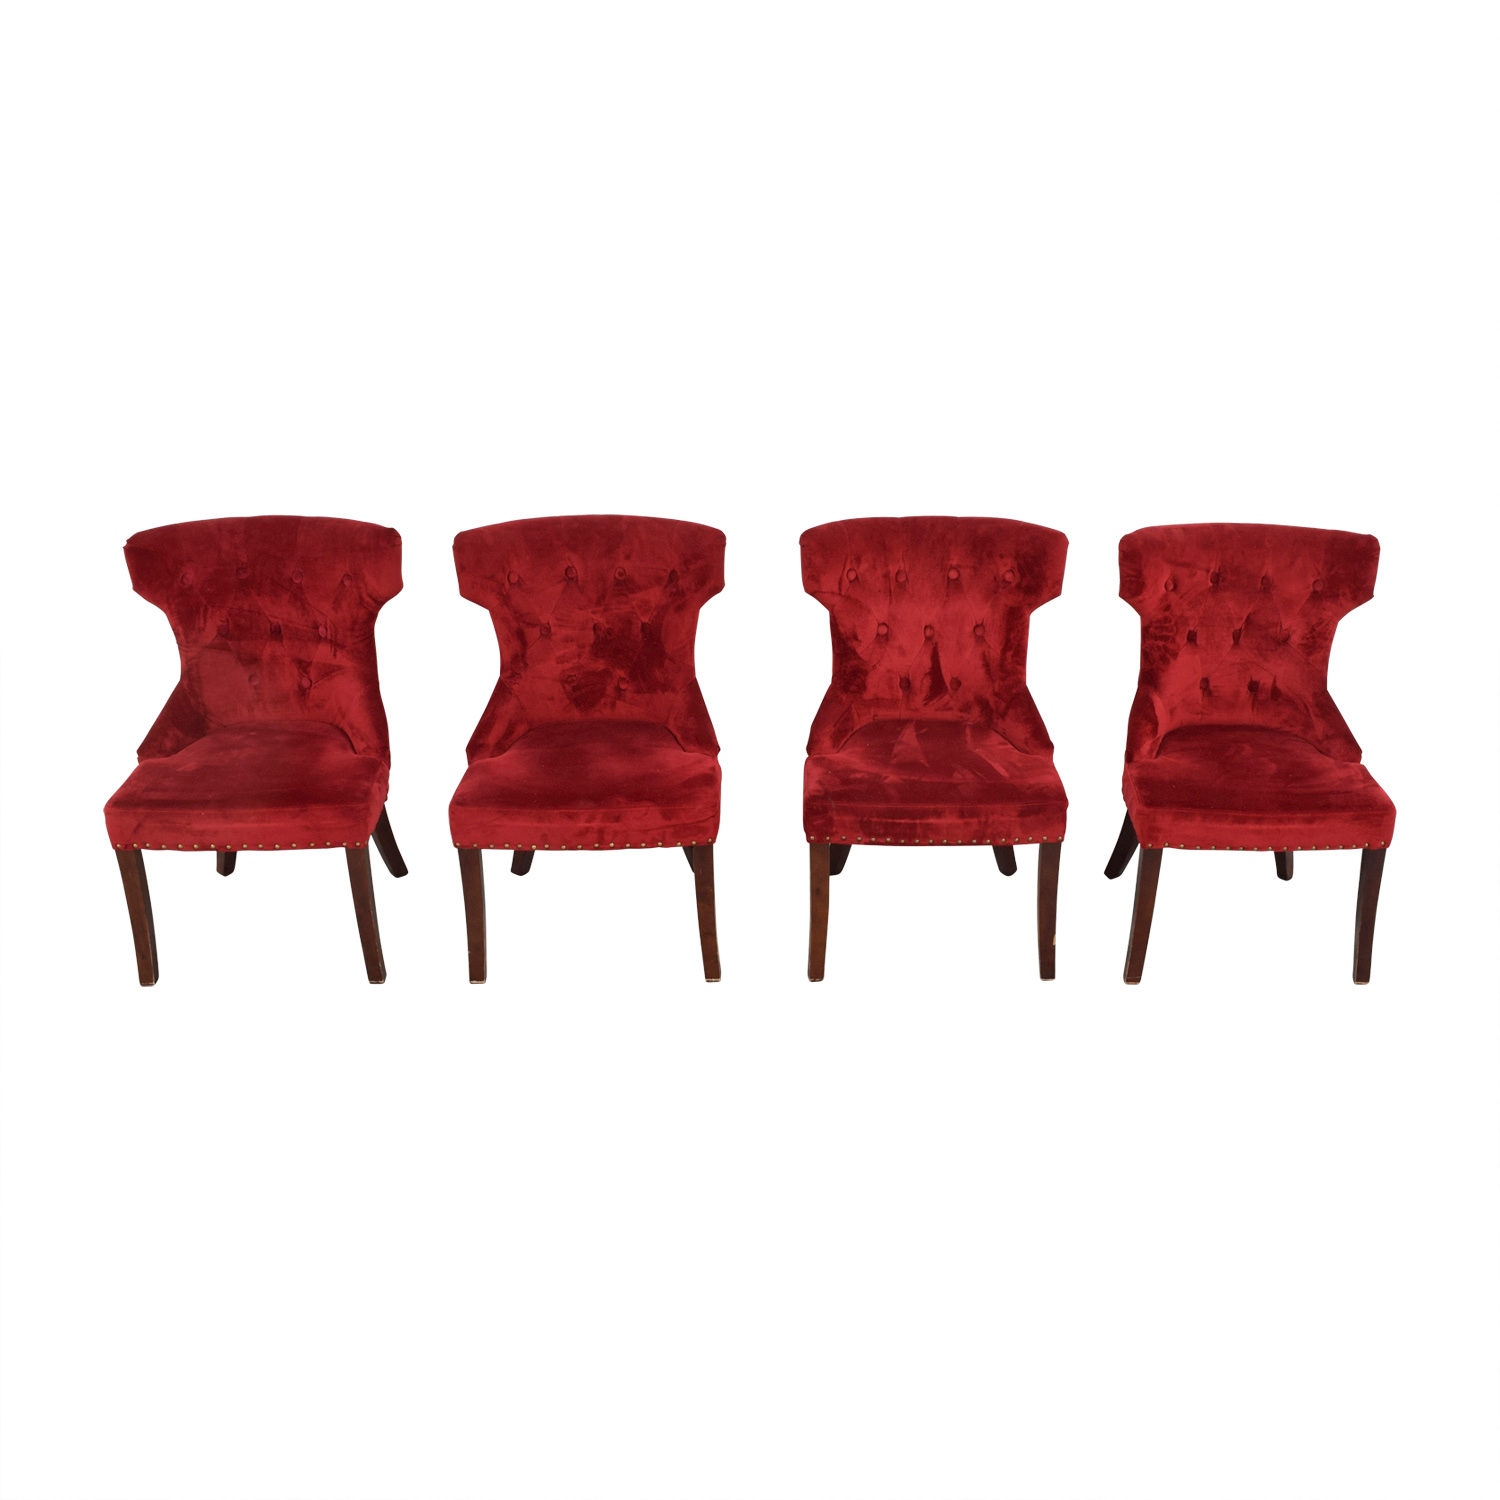 ... Tufted Nailhead Red Velvet Dining Chairs Second Hand ...